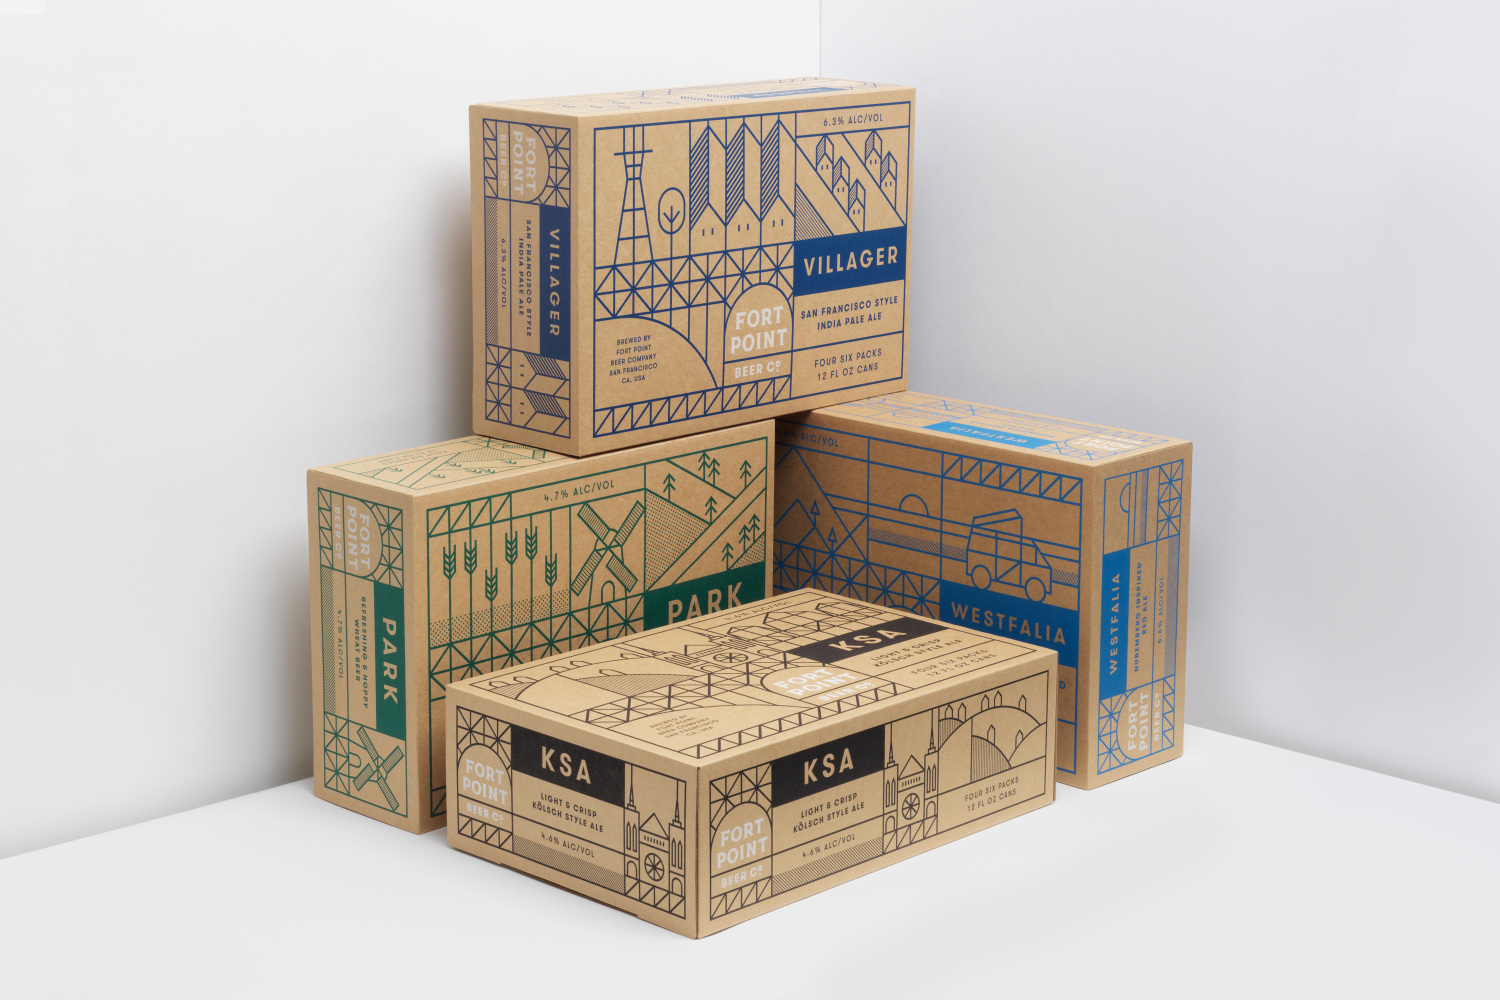 New packaging for fort point beer co by manual bp o for Design companies in san francisco